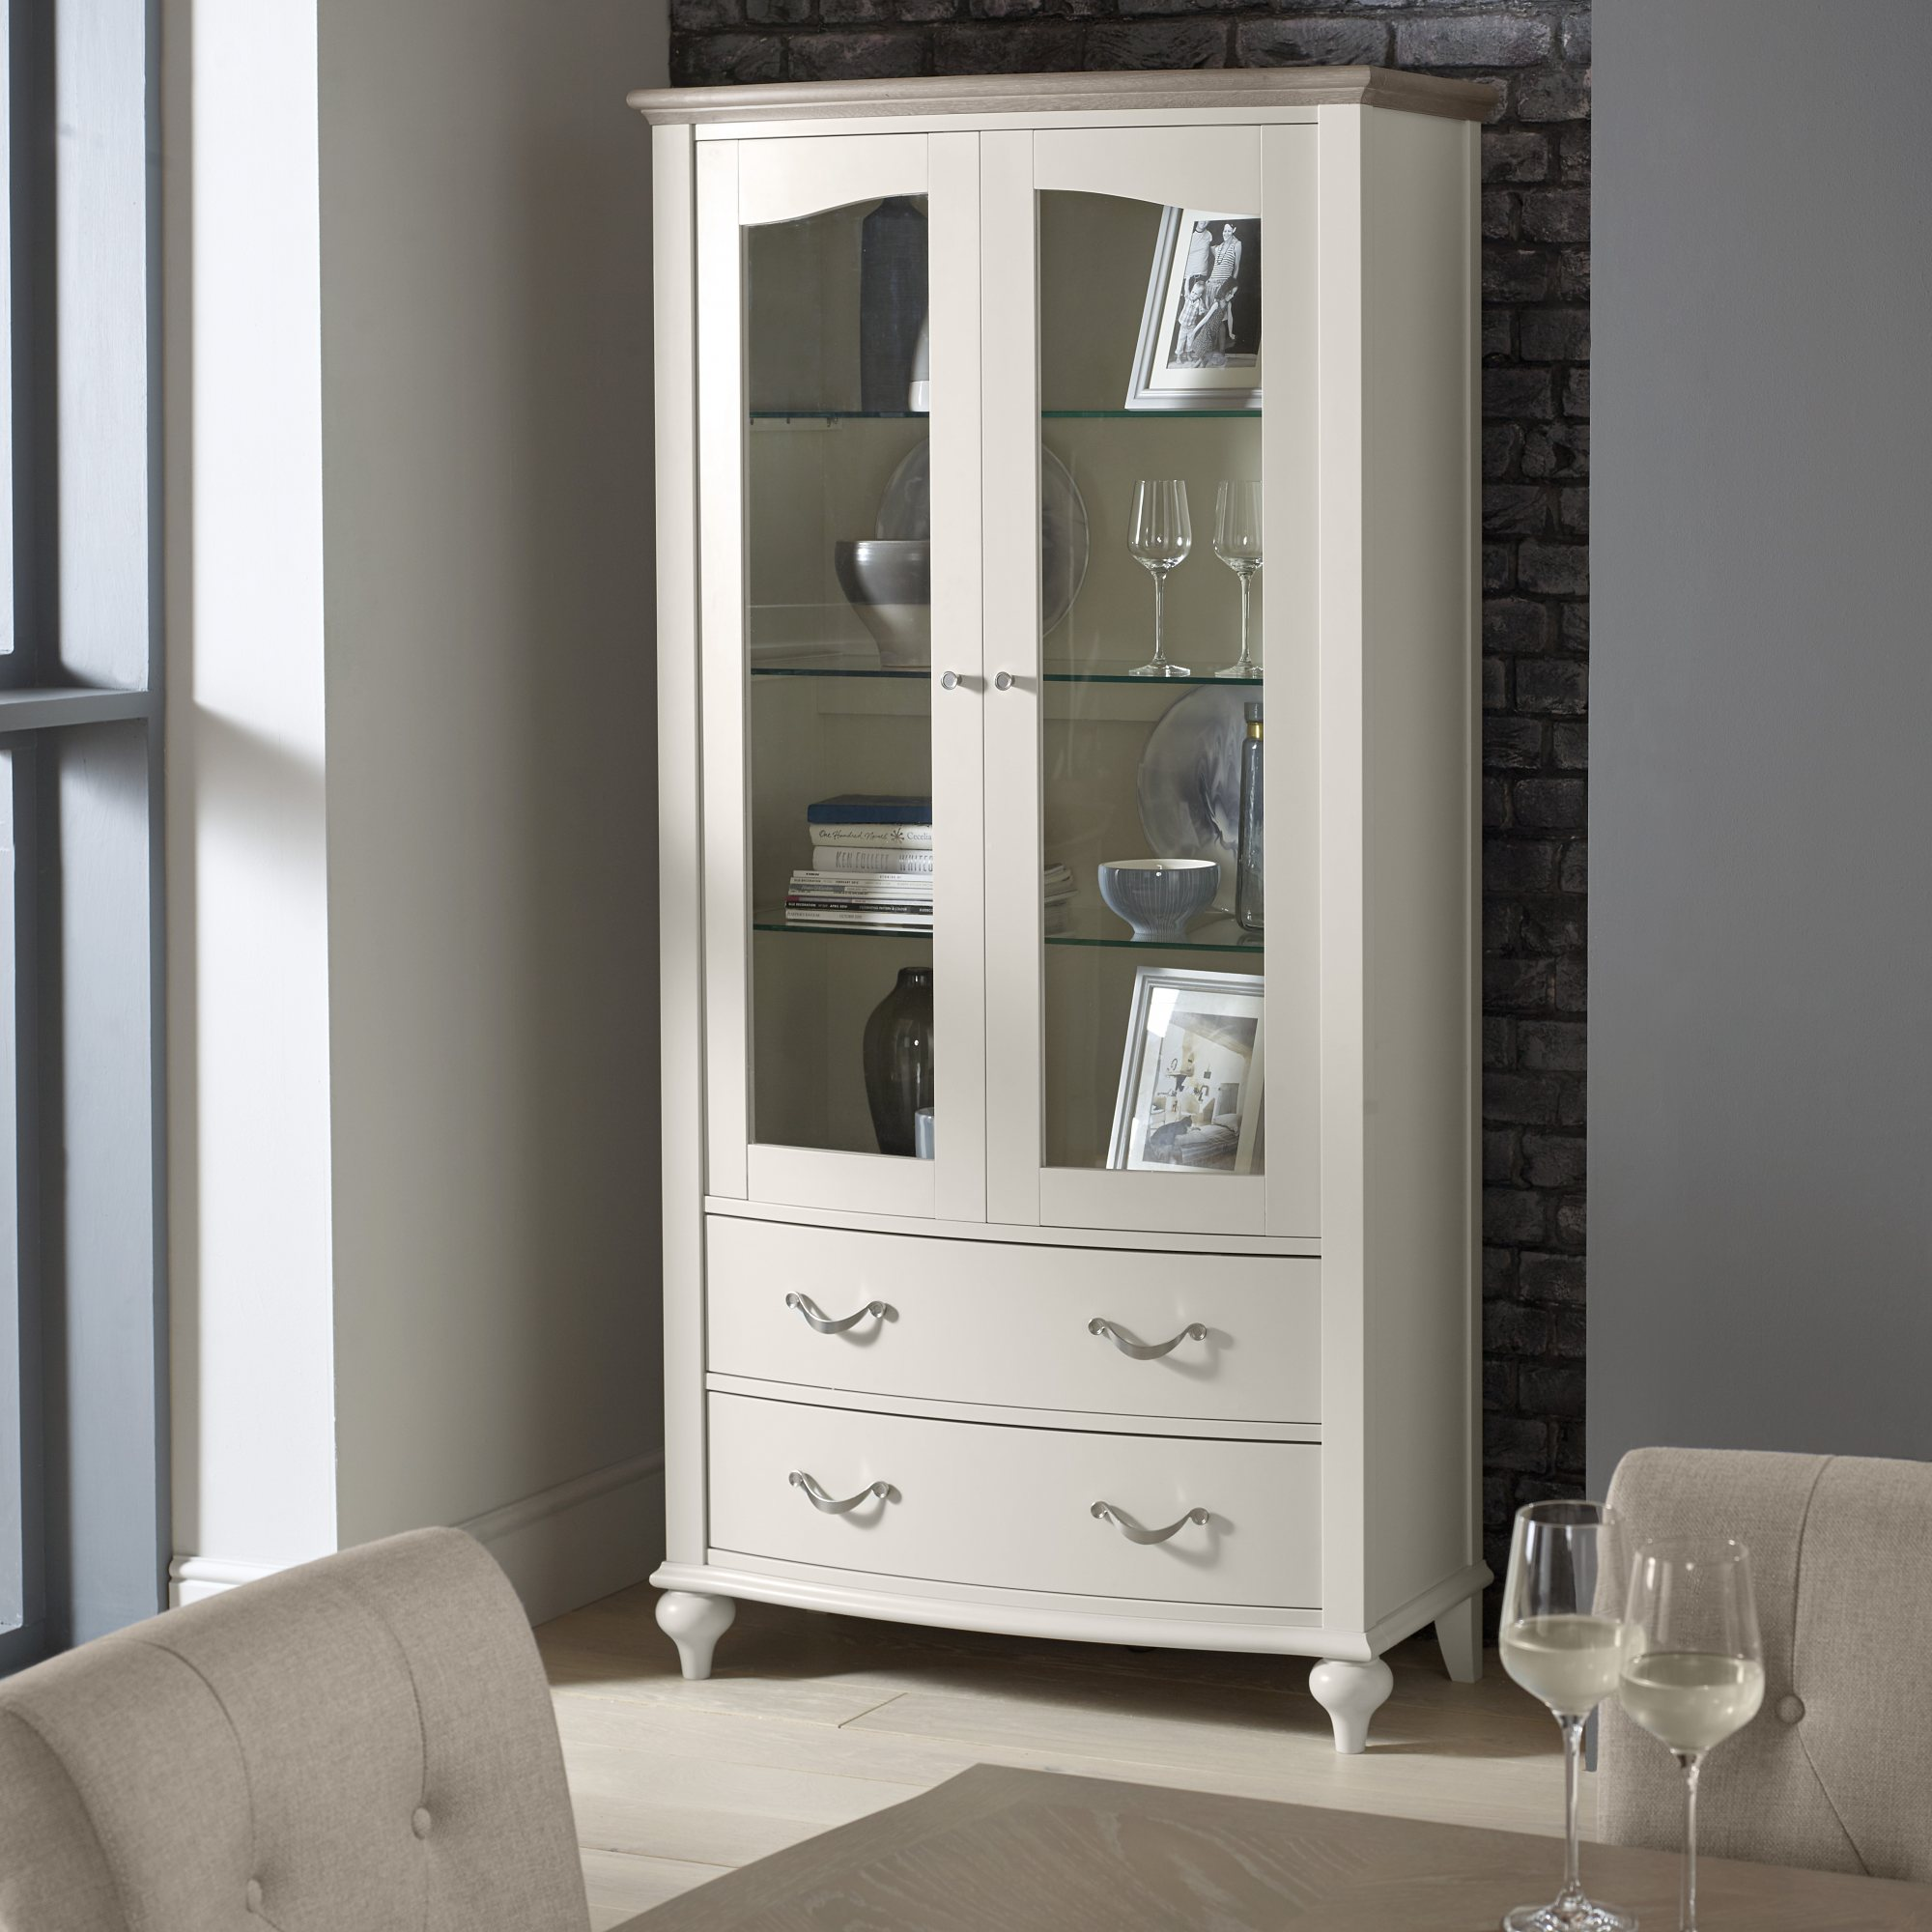 MONICA GREY DISPLAY CABINET - L100cm x D47cm x H201cm